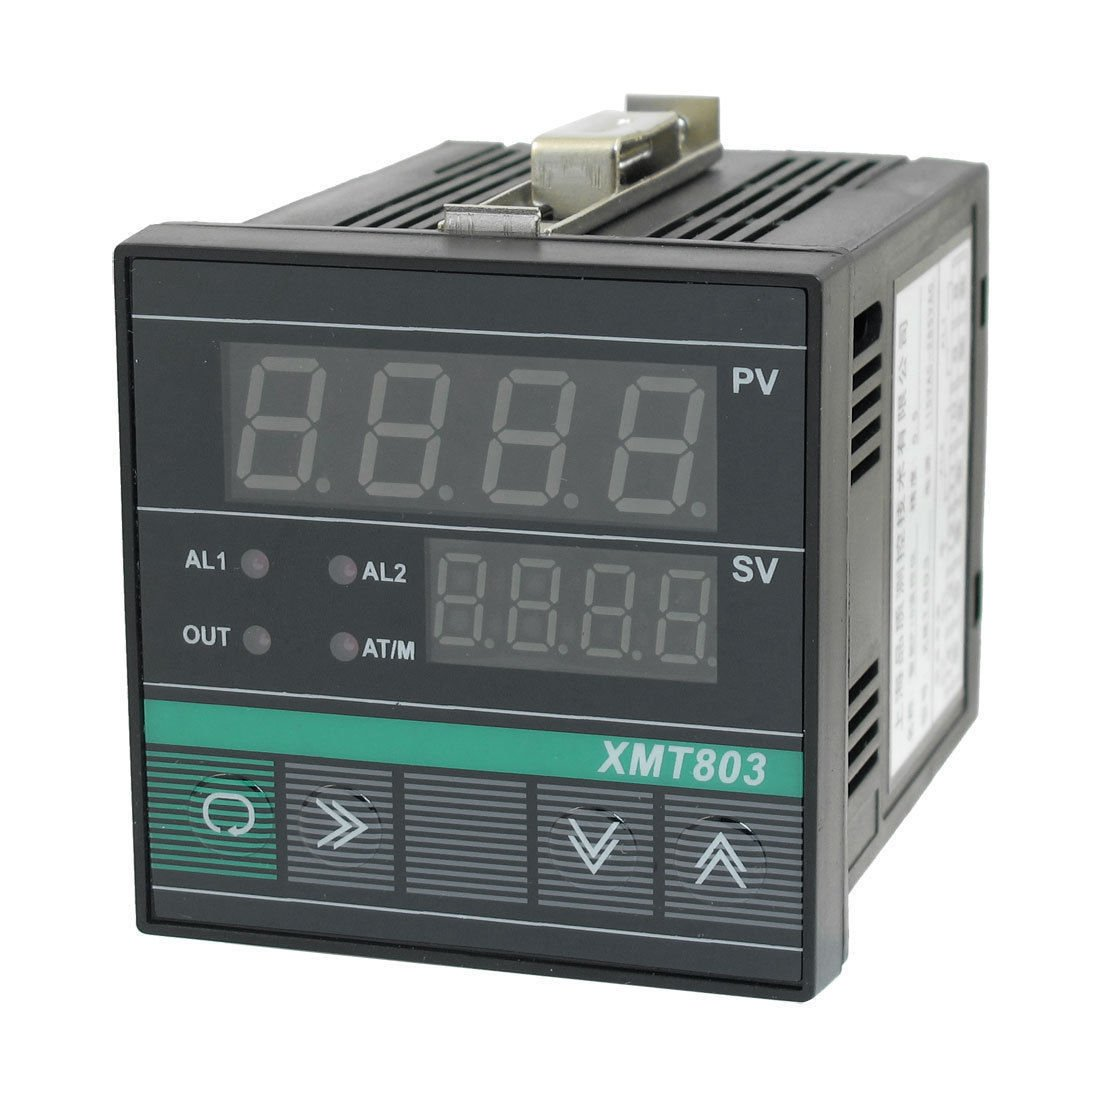 XMT-803 SSR Output PV SV Display PID Digital Temperature Controller Meter